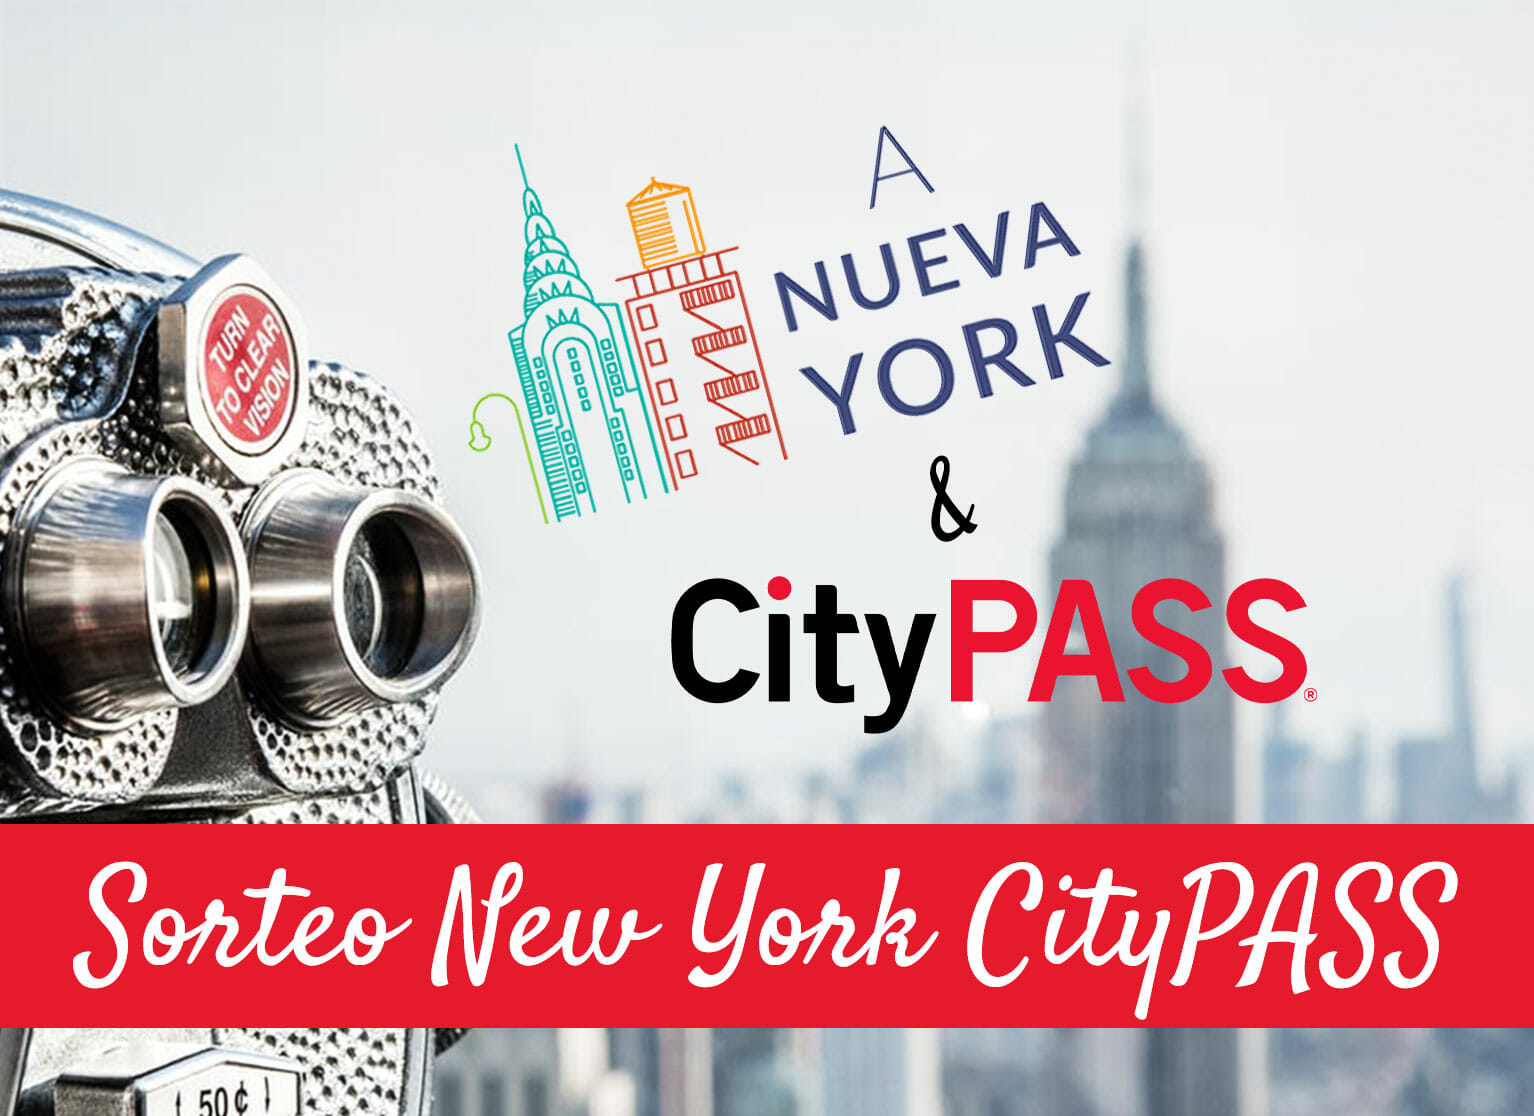 Sorteo New York CityPASS